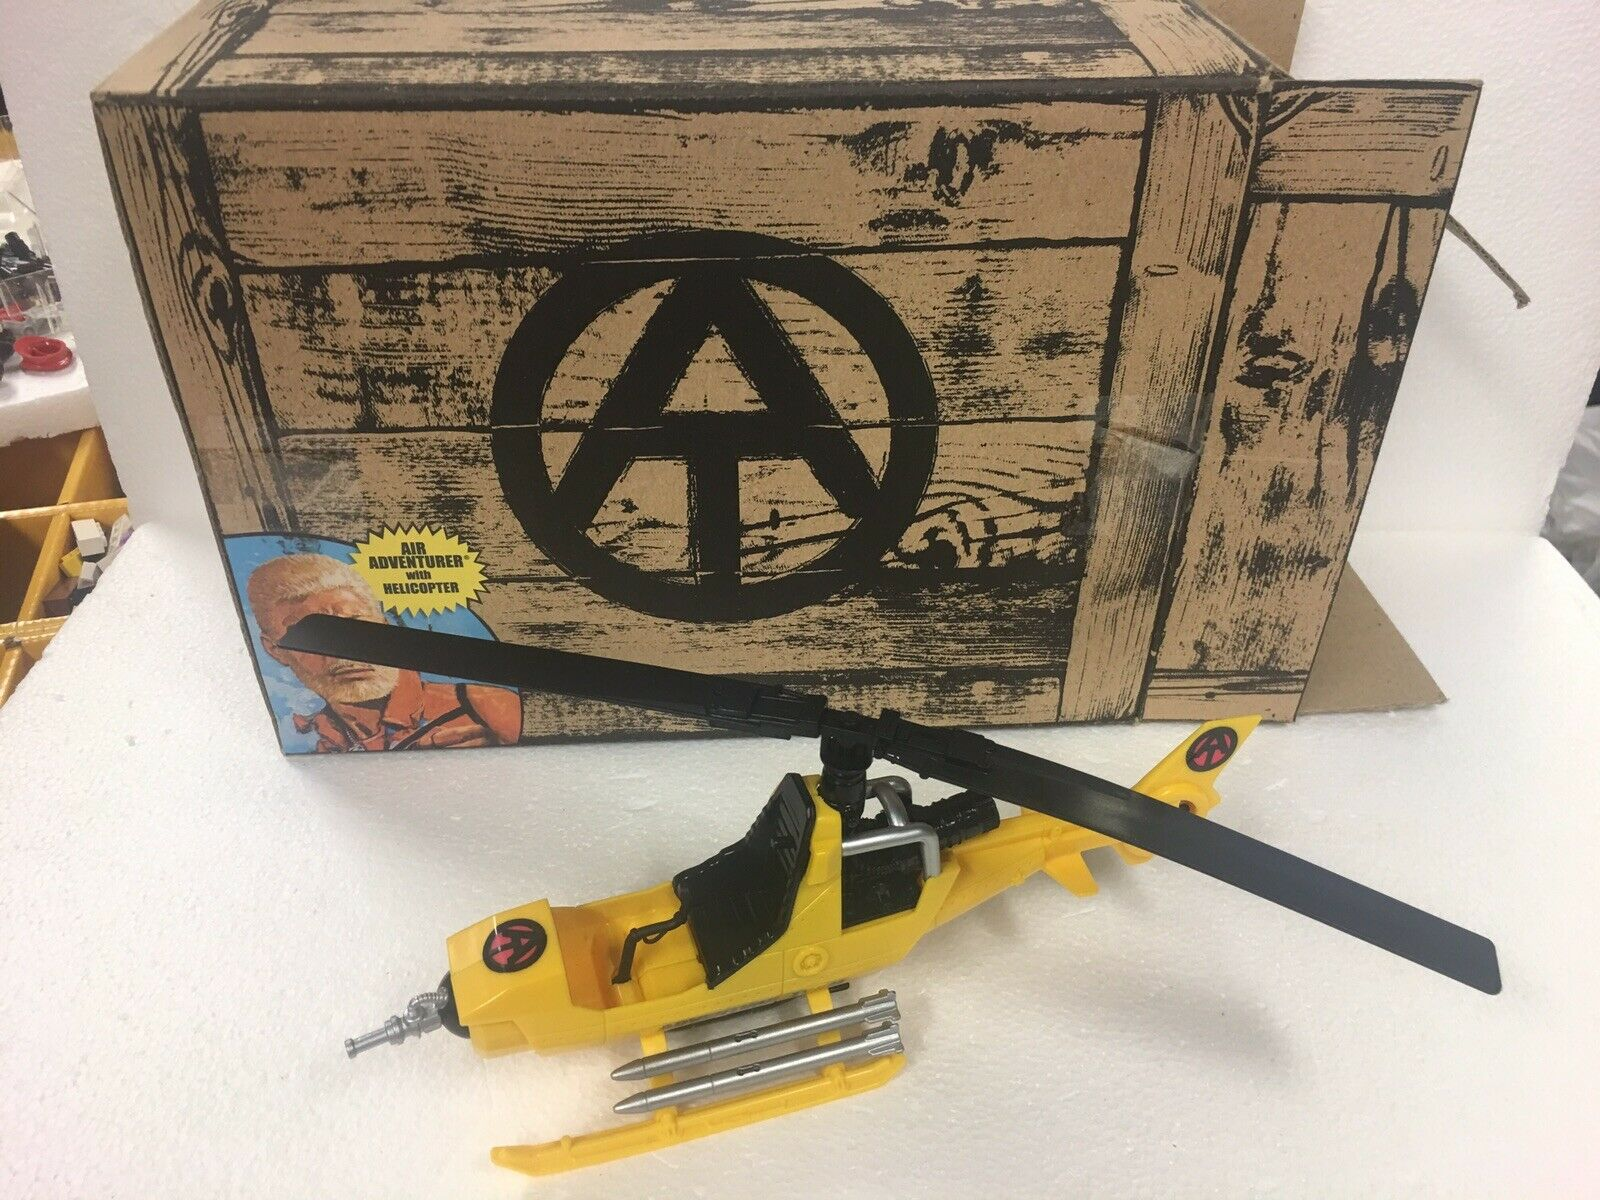 GI Joe ARAH 2010 Collectors Collectors Collectors Club Exclusive Air Adventure FANG Helicopter 100% fd783b